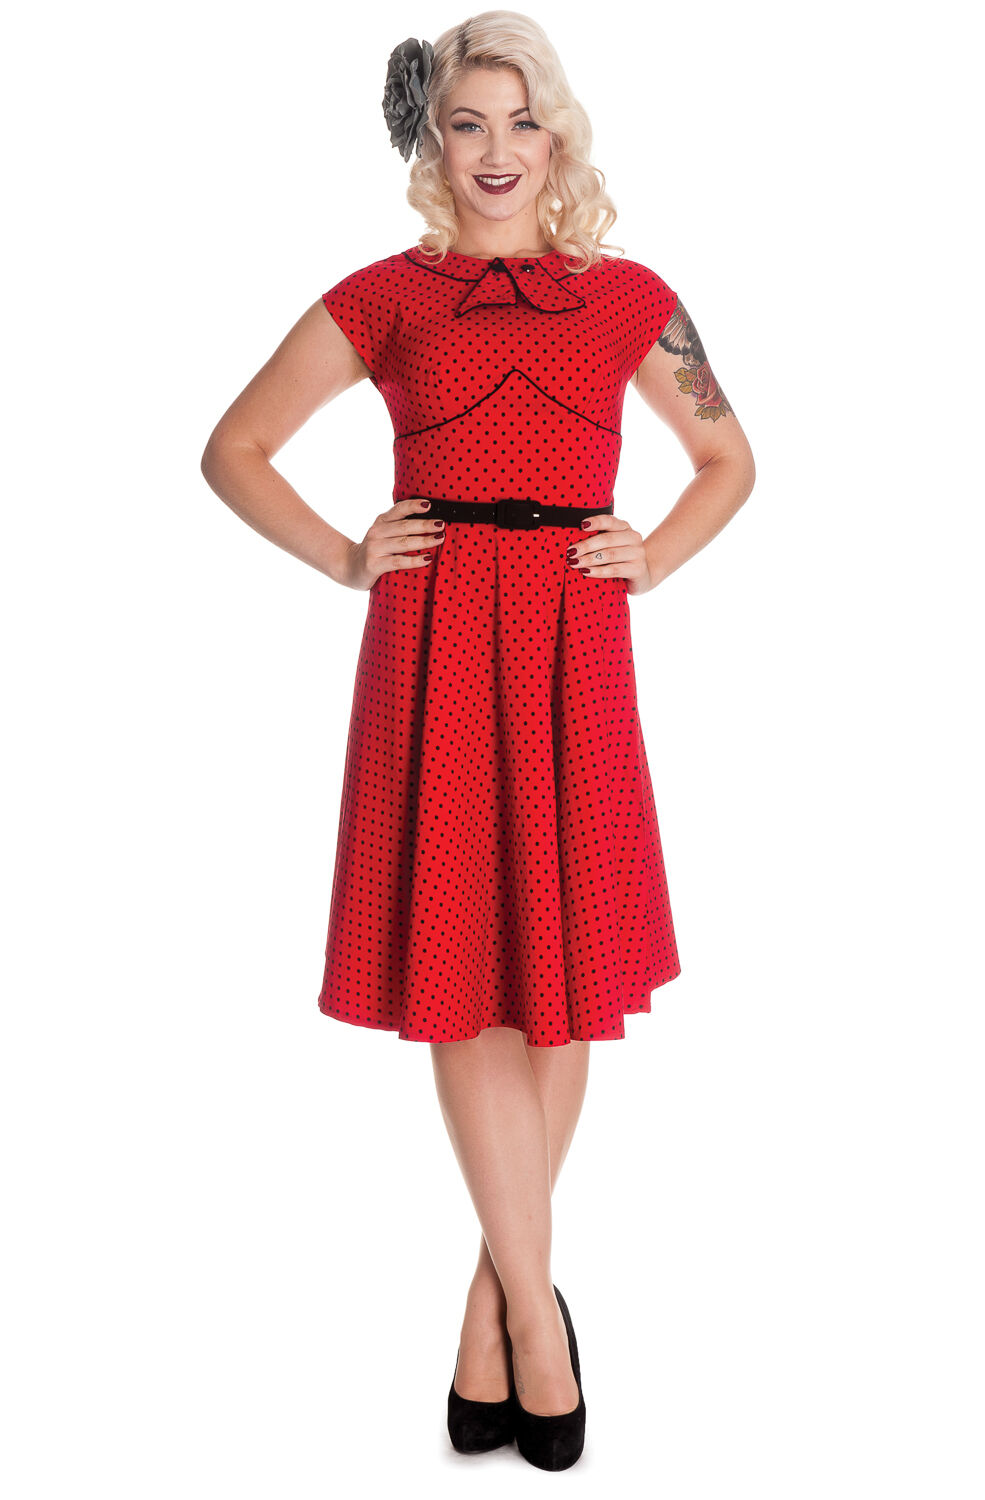 hell bunny noreen dress 40s 50s tea party pin up retro rockabilly vintage style ebay. Black Bedroom Furniture Sets. Home Design Ideas